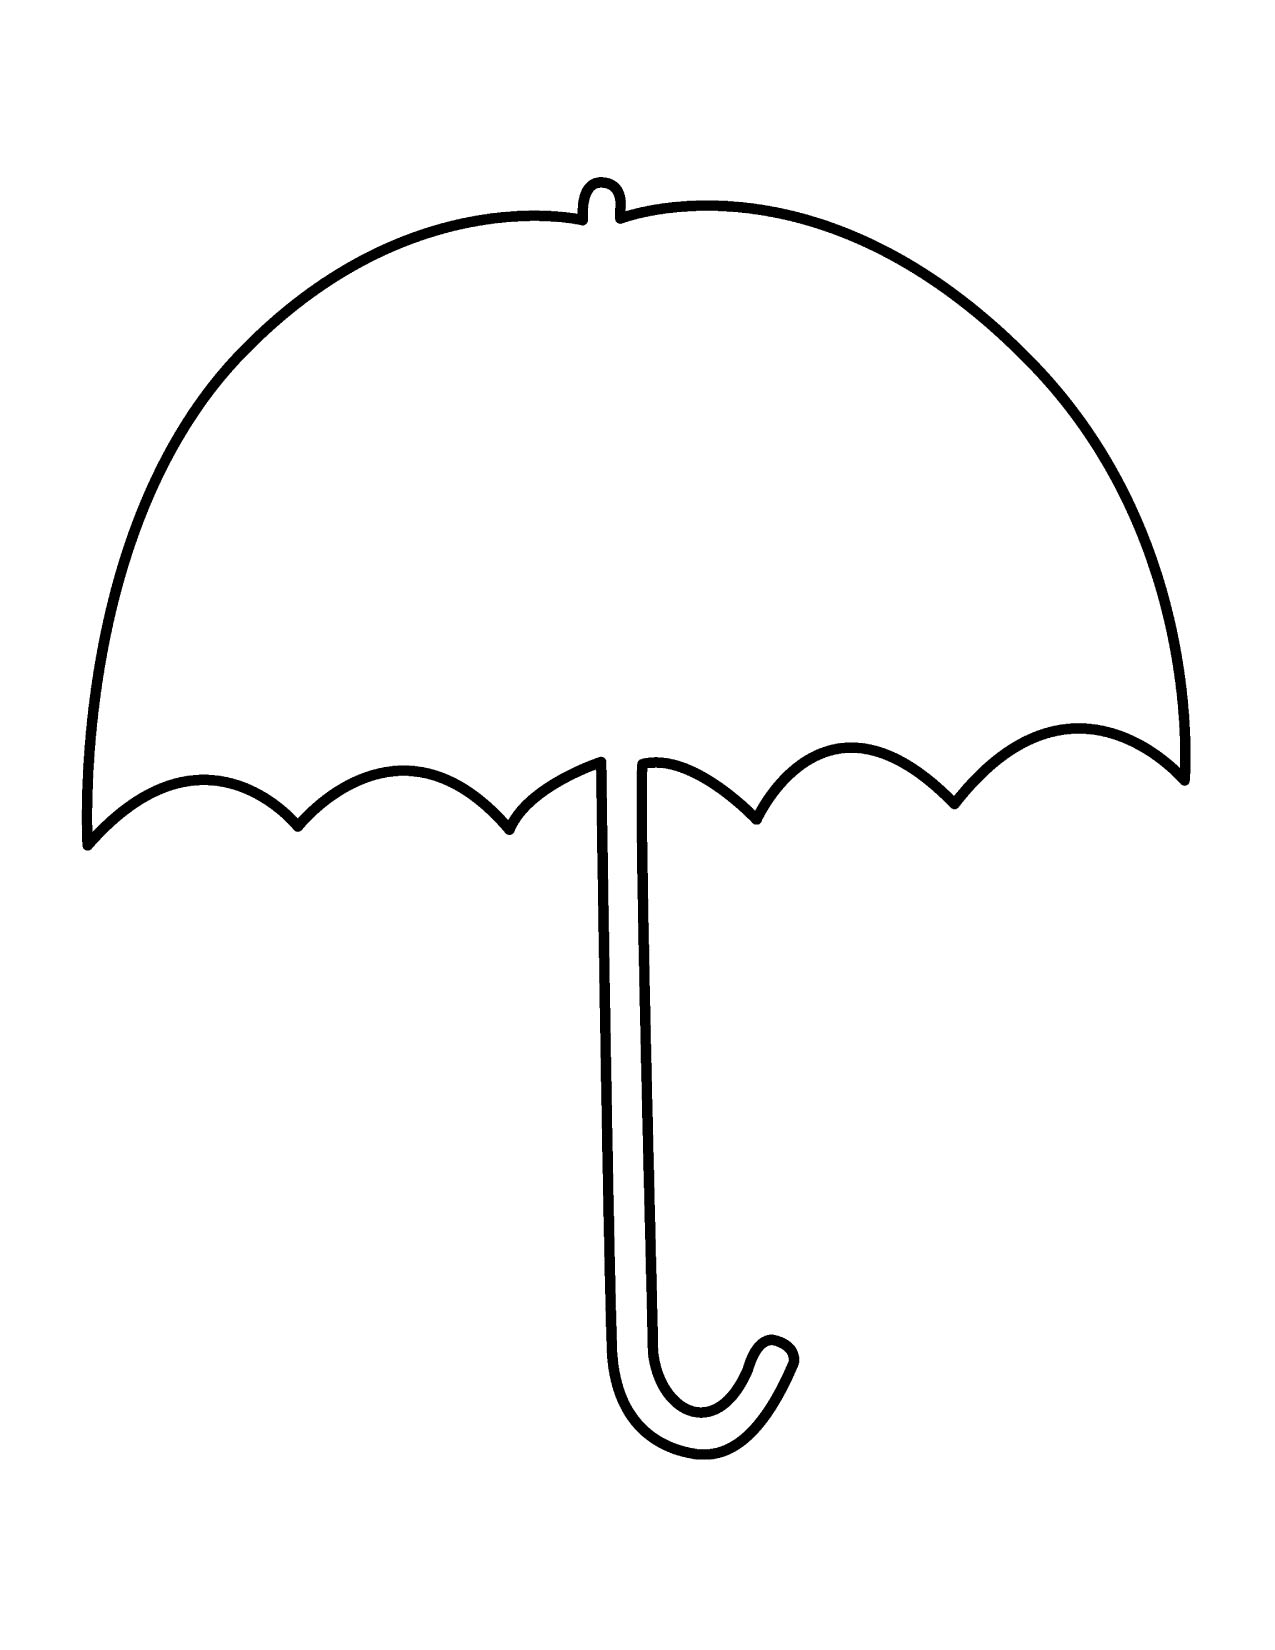 Umbrella Coloring Page For Alphabet Letter U